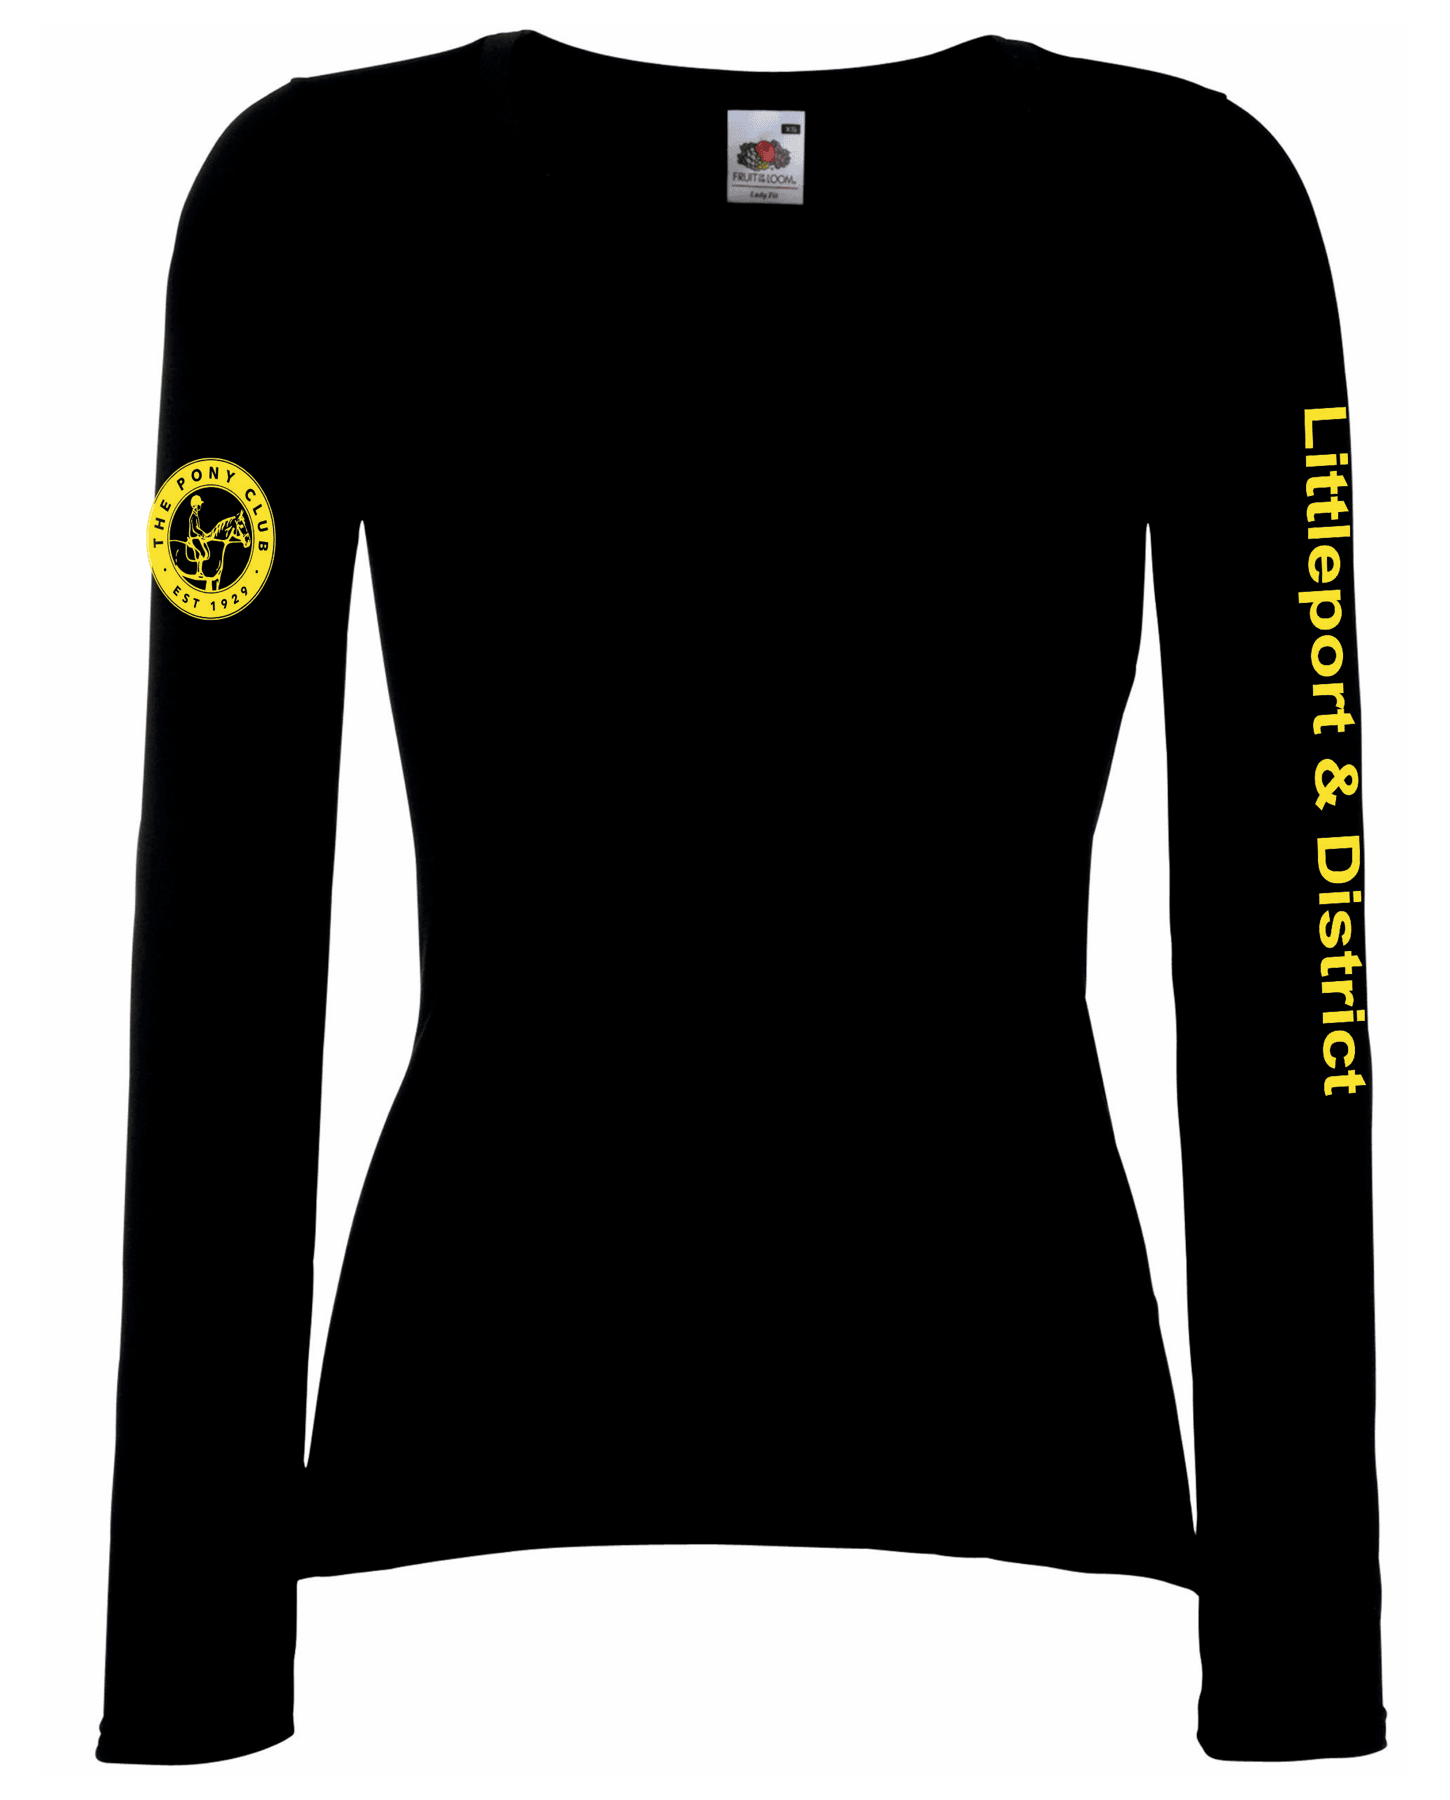 Littleport & District Pony Club – Long Sleeve Tee Ladyfit